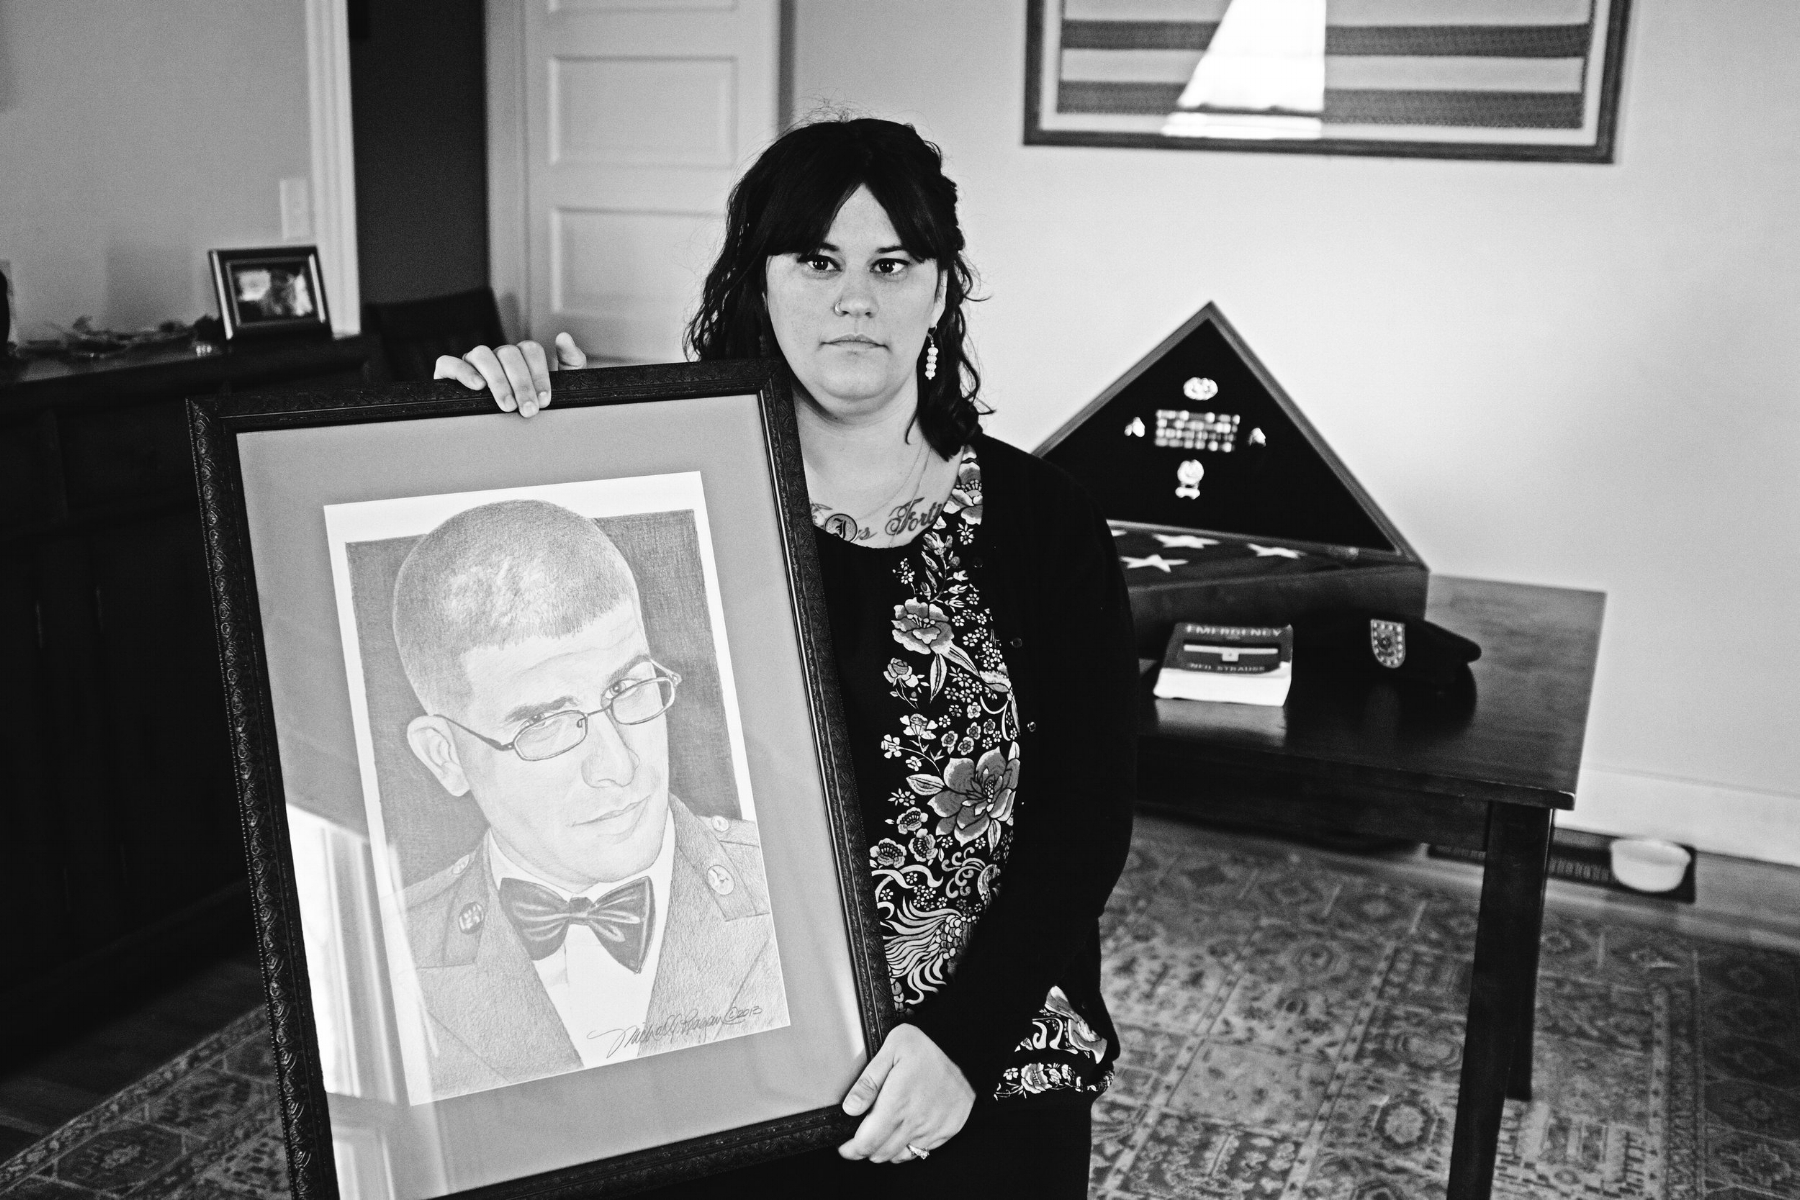 One of Lauren's favorite images of James is a portrait done by Michael Reagan of the Fallen Heroes Project. Michael immortalizes the fallen in portraits he gives to their families. (Photograph by Thi Linh Wernau)